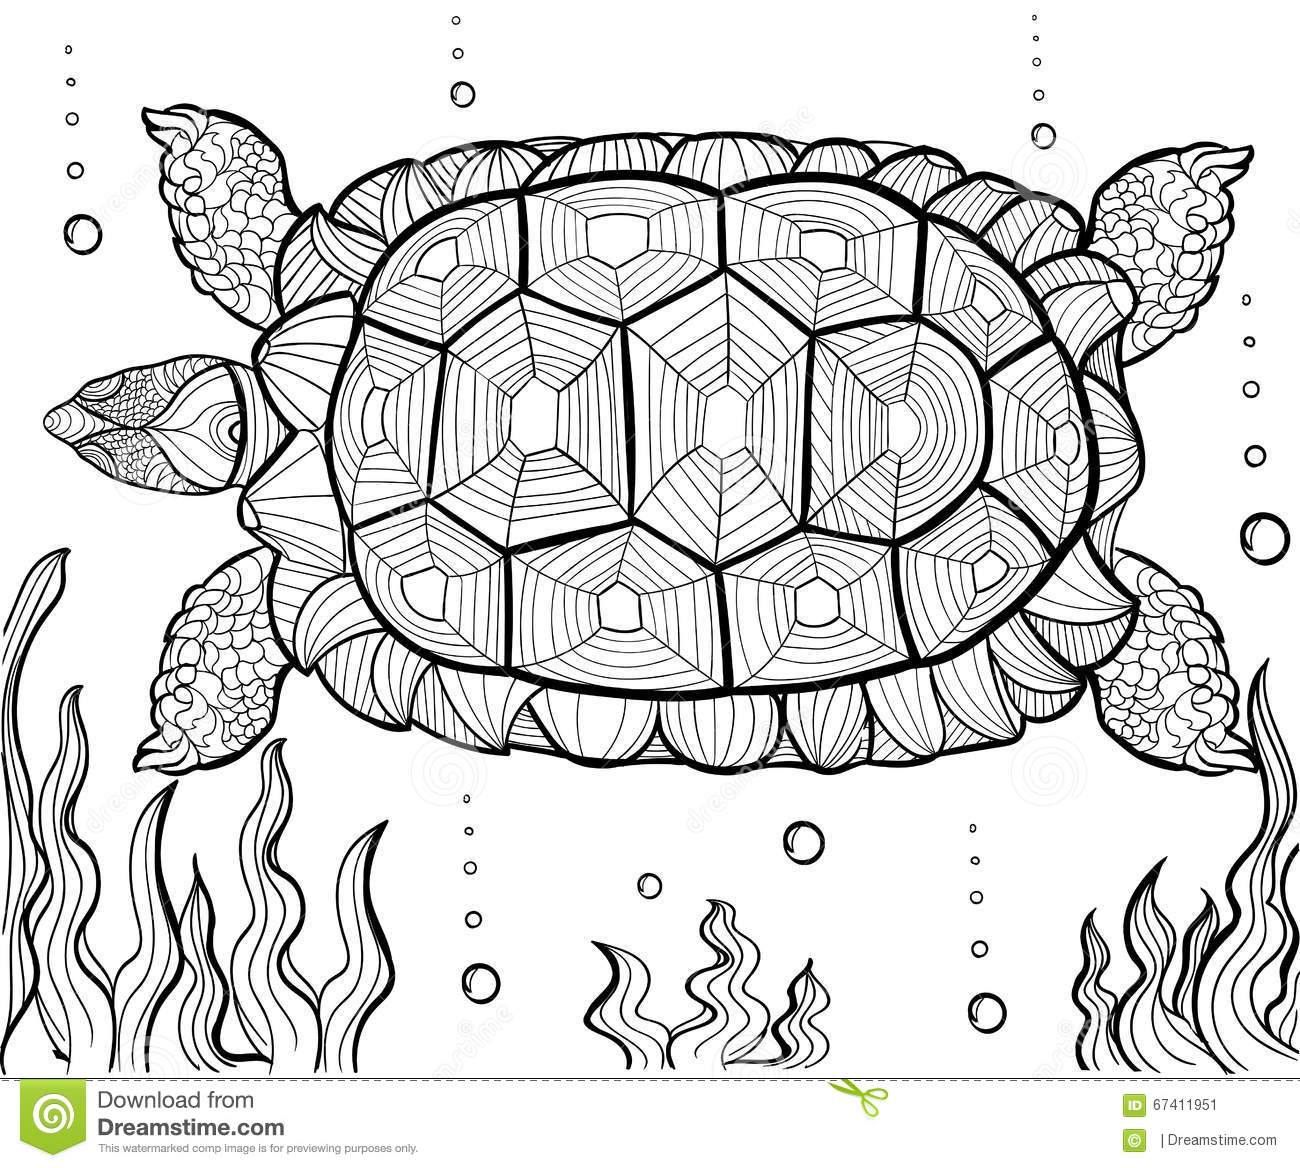 Posh coloring book soothing designs for fun and relaxation - Coloring Book Coloring For Adult Page For Coloring Book Very